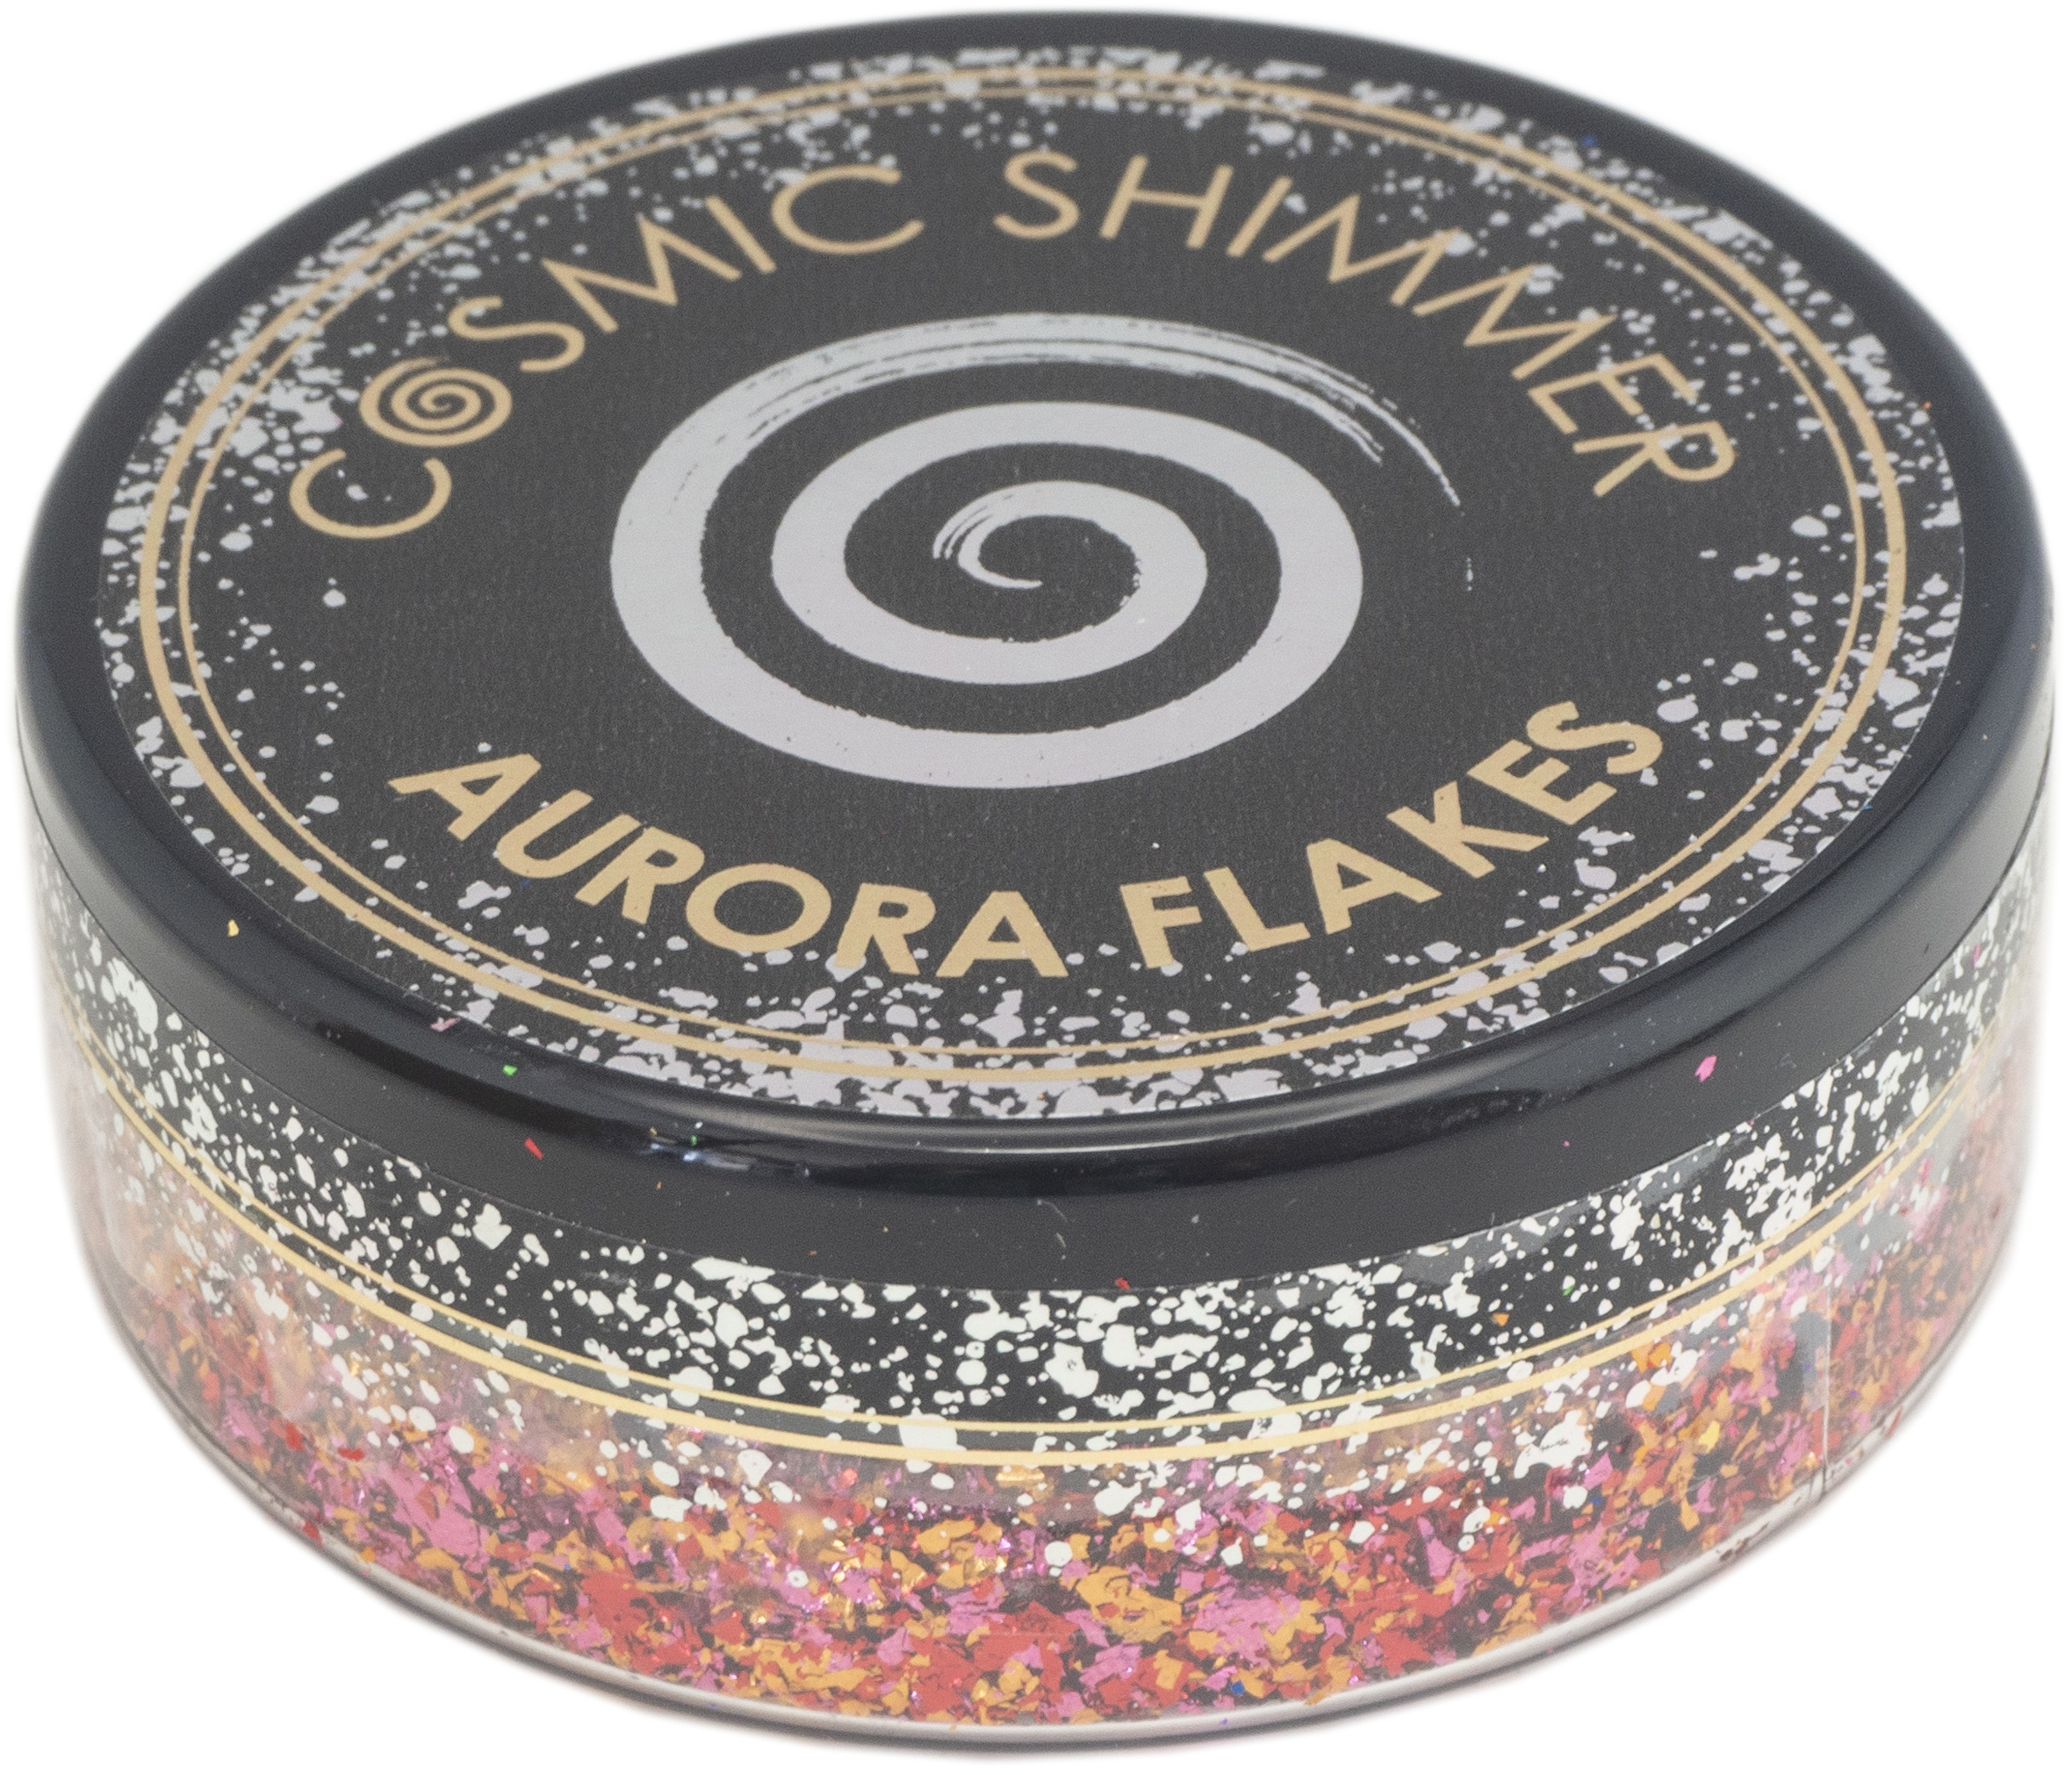 Creative Expressions Cosmic Shimmer Aurora Flakes 50ml-Amber Glow